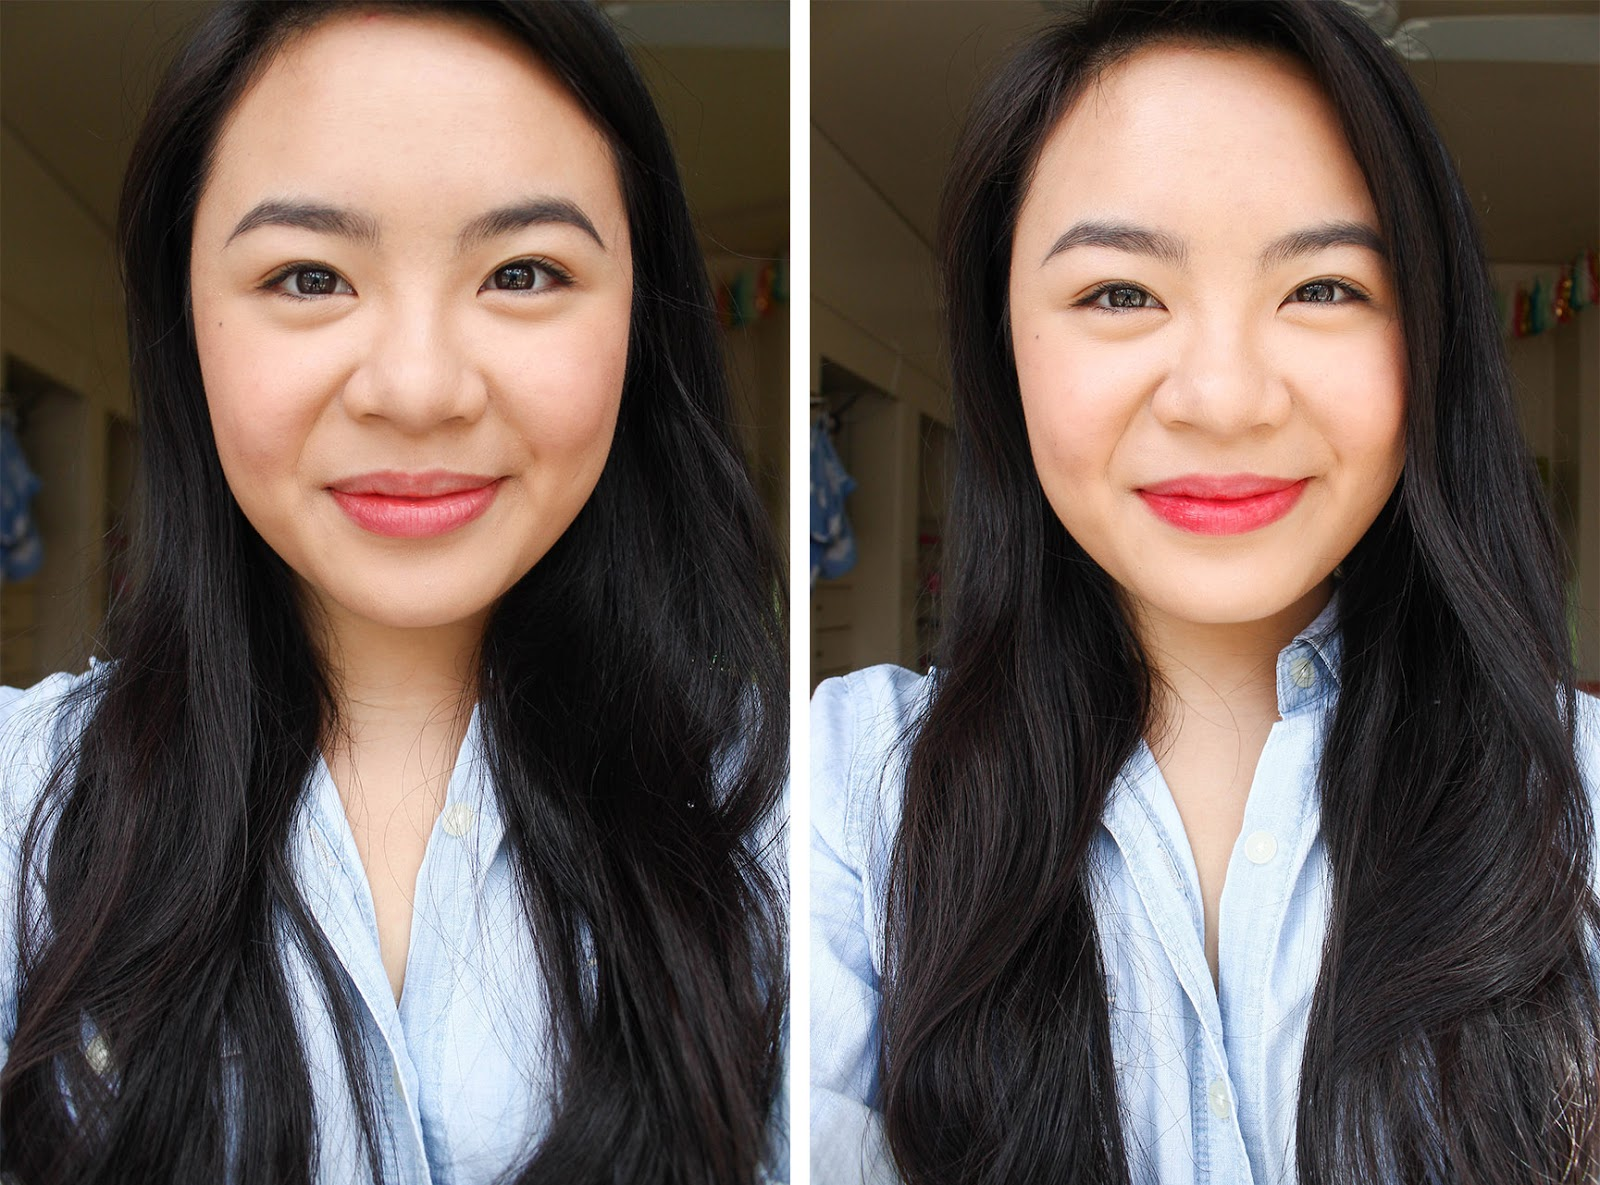 Tony Moly Tint #2 Red, 3 Spring Lip Looks | The Bella Insider